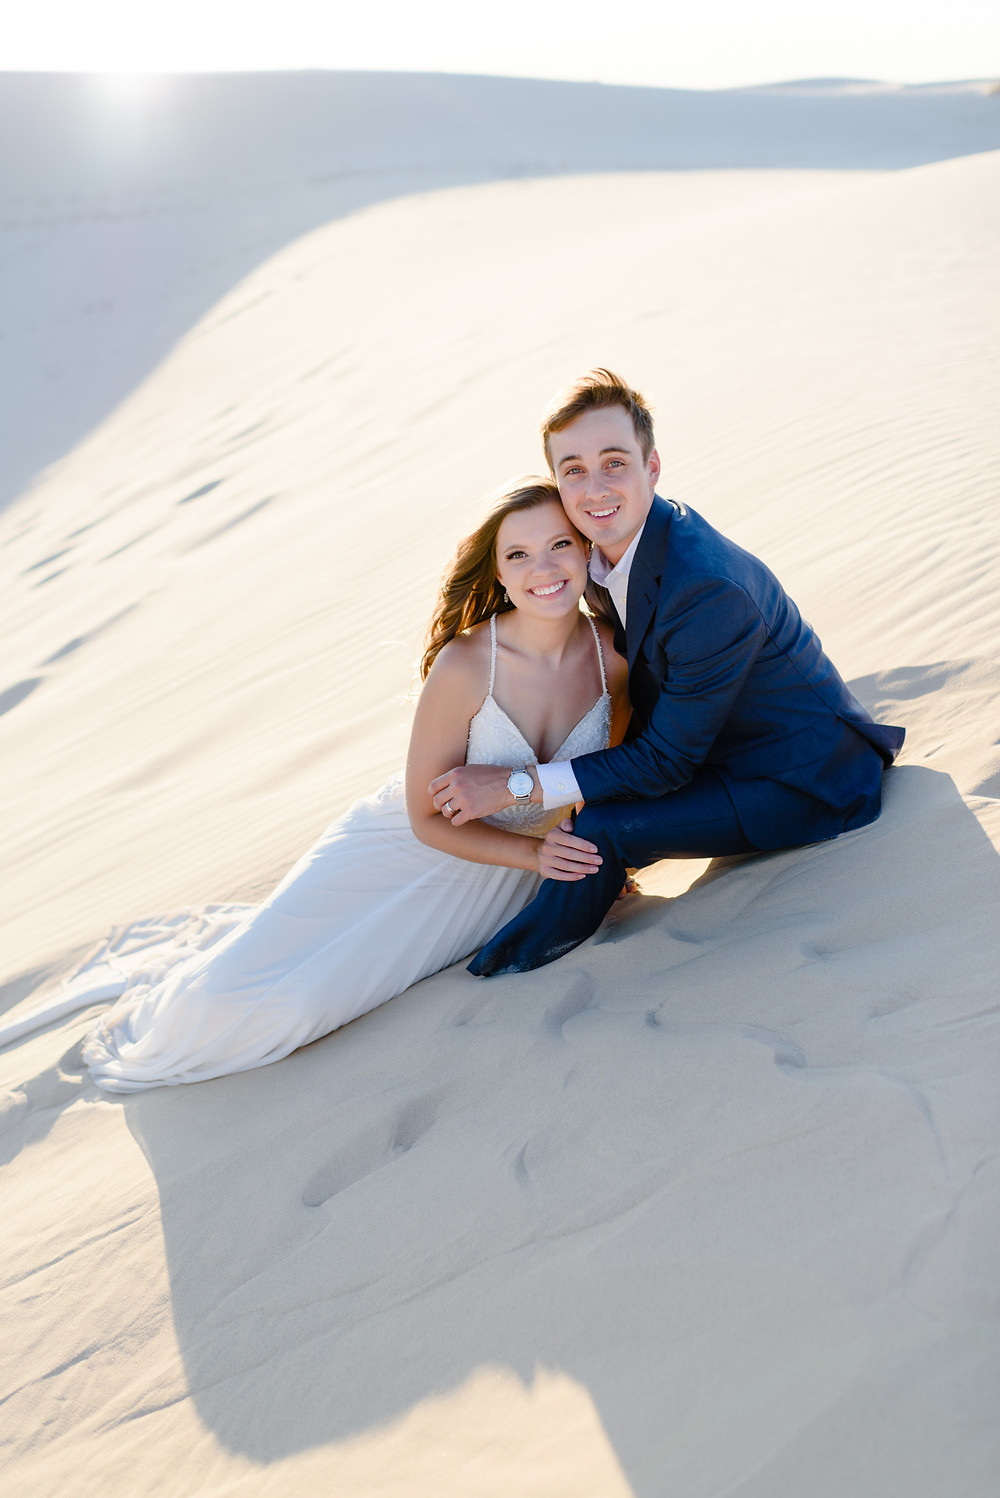 elopement in sand dunes with couple sitting in sand smiling at the camera